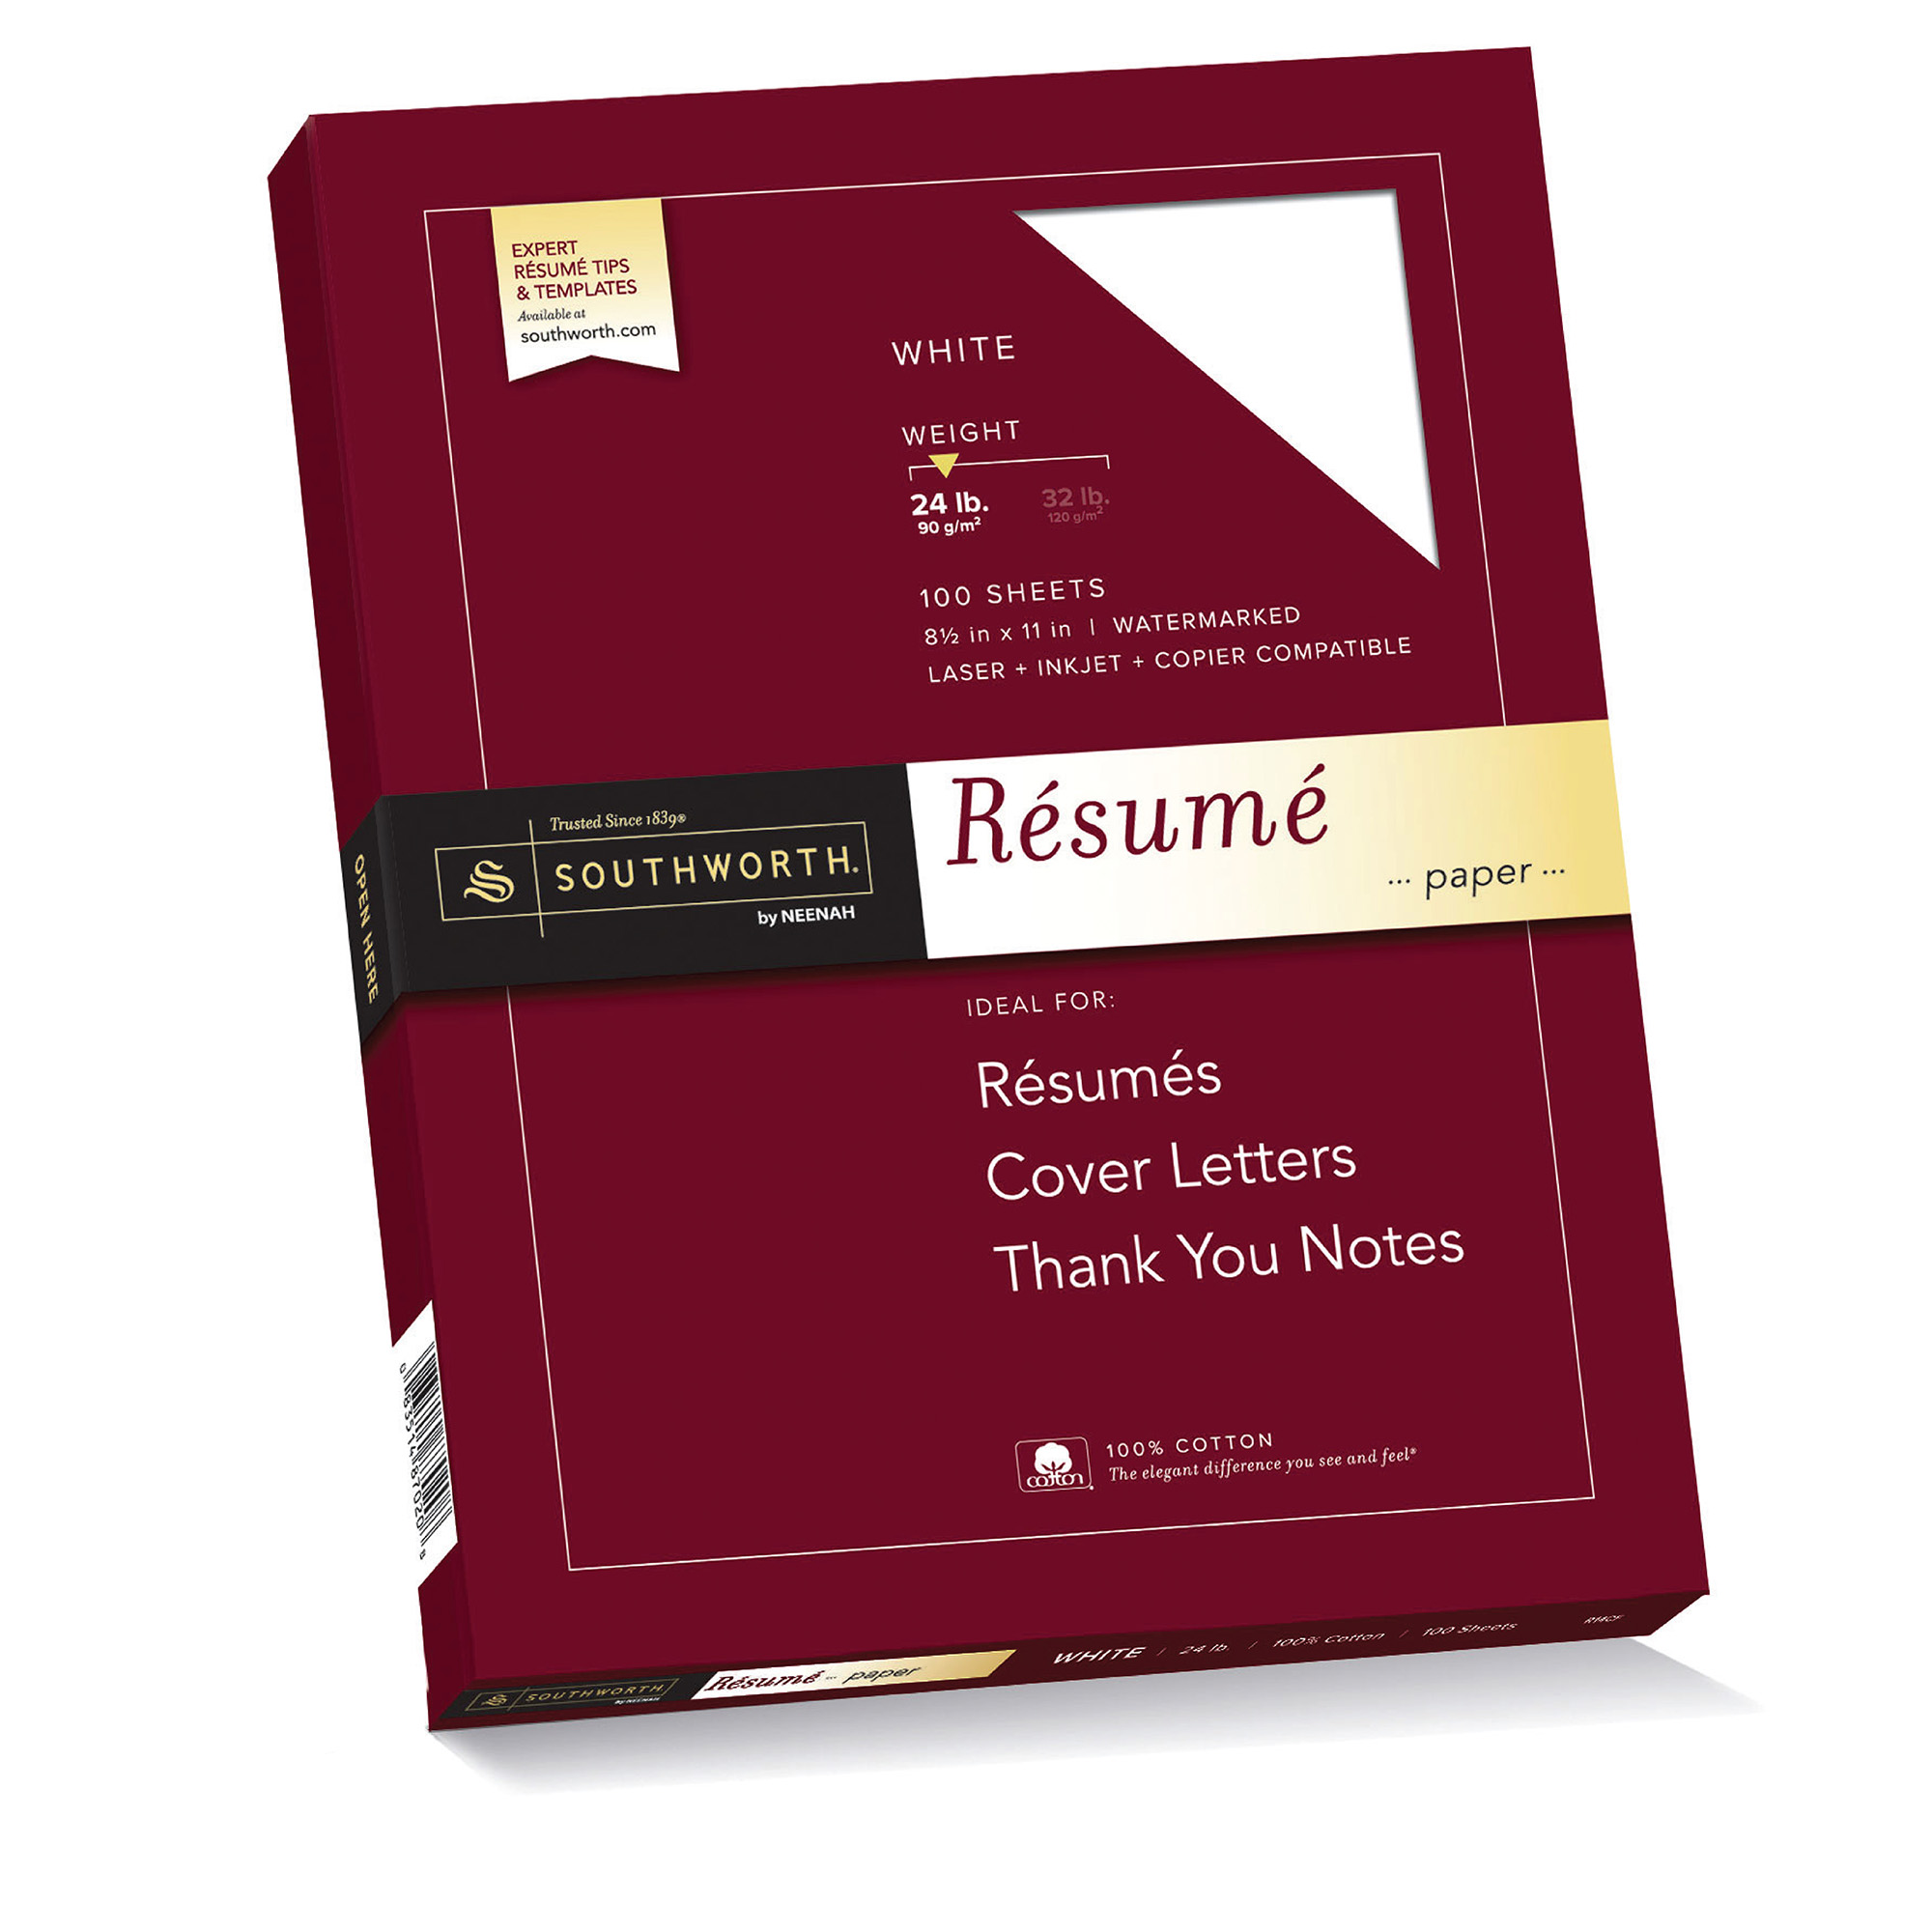 "Southworth 100% Cotton Resume Paper, 8.5"" x 11"", 24 lb., Wove Finish, White, 100 Sheets"